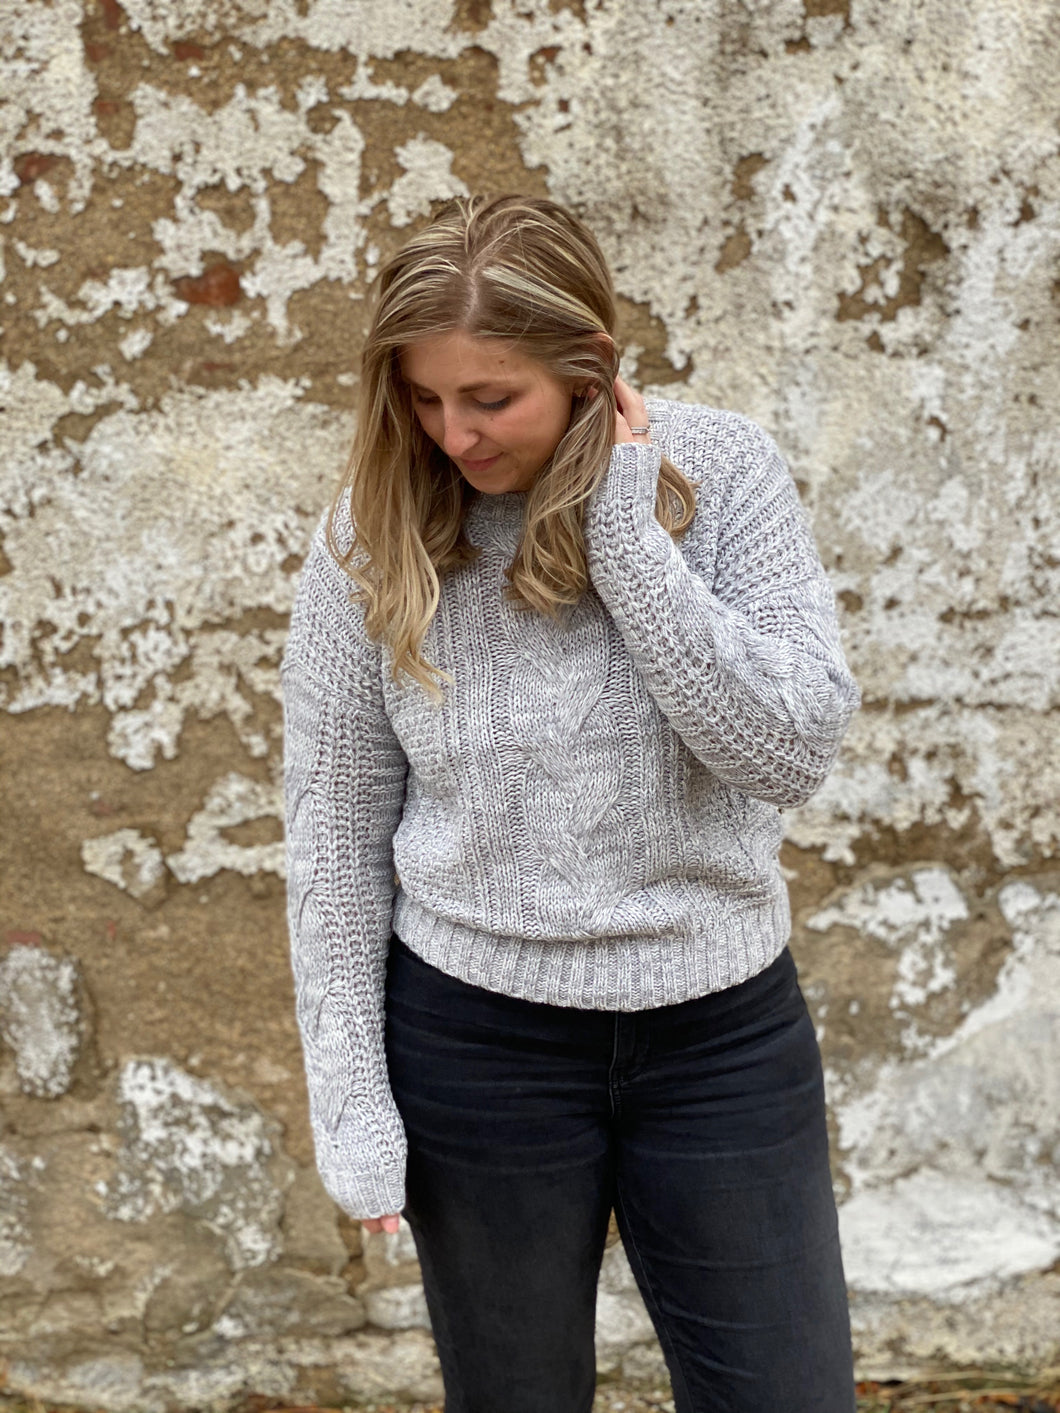 The Twisted Cable Knit Sweater